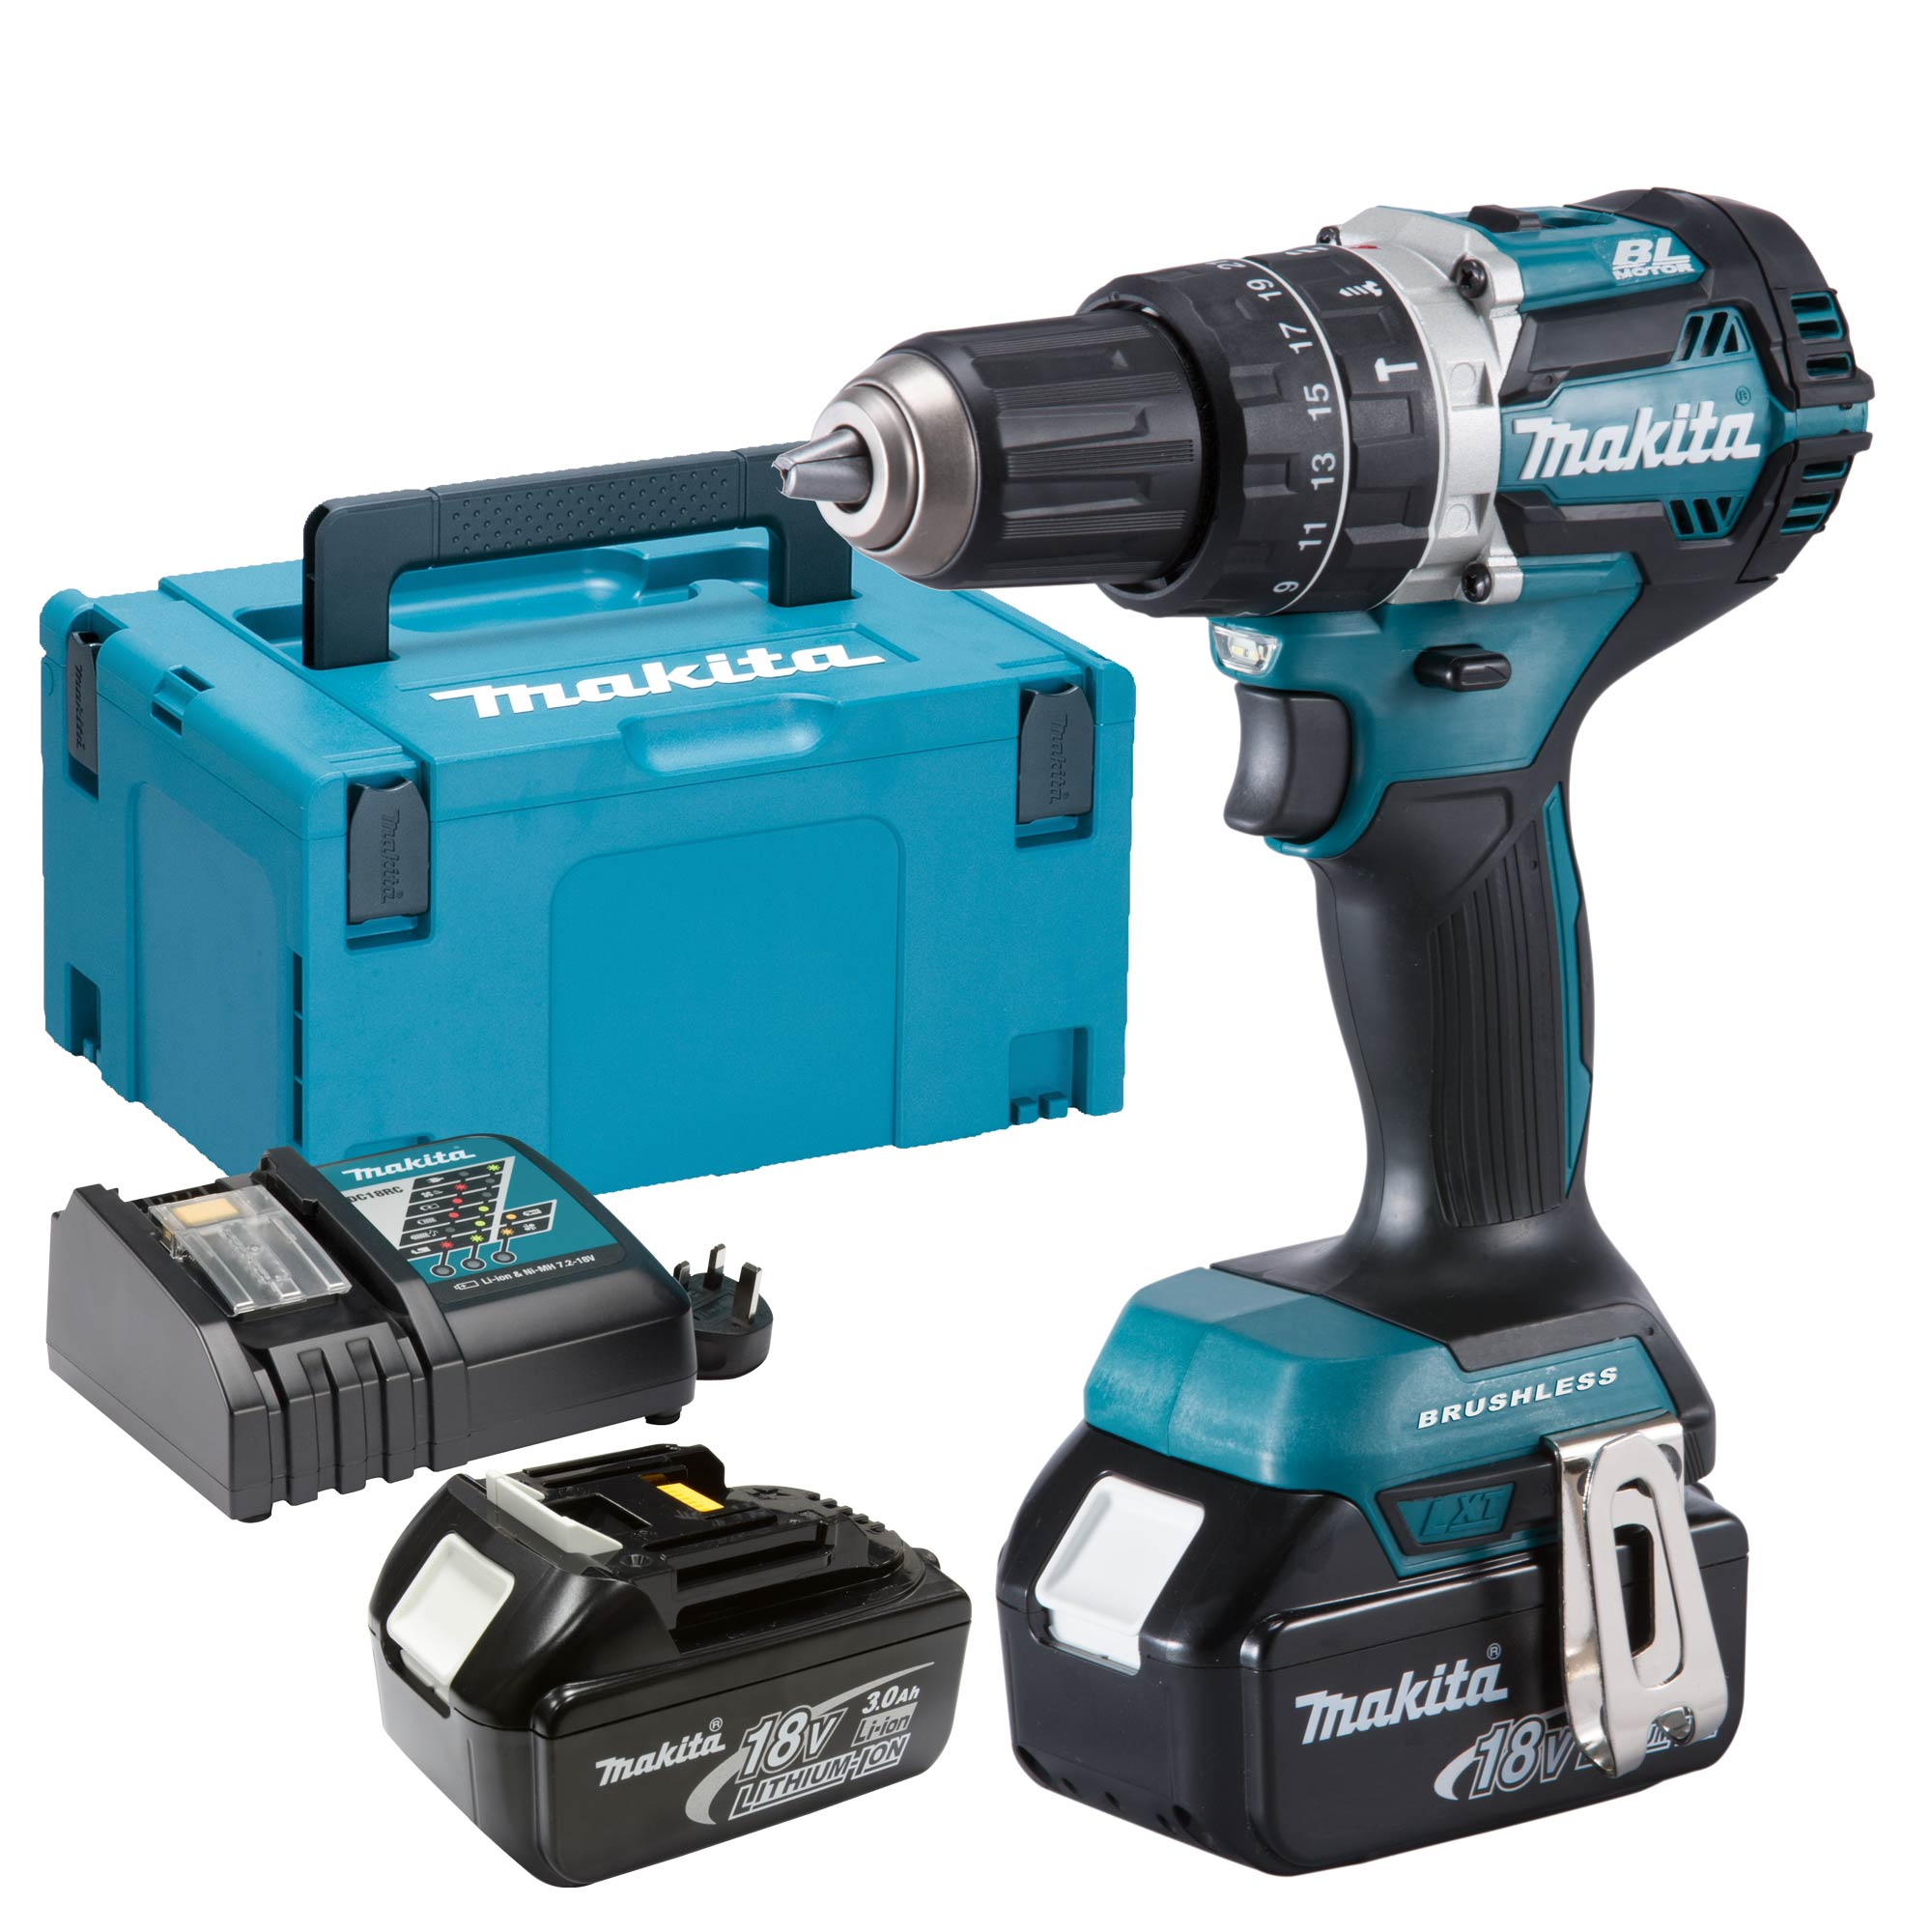 makita dhp484rj makita 18v li ion 3 0ah brushless hammer drill driver. Black Bedroom Furniture Sets. Home Design Ideas